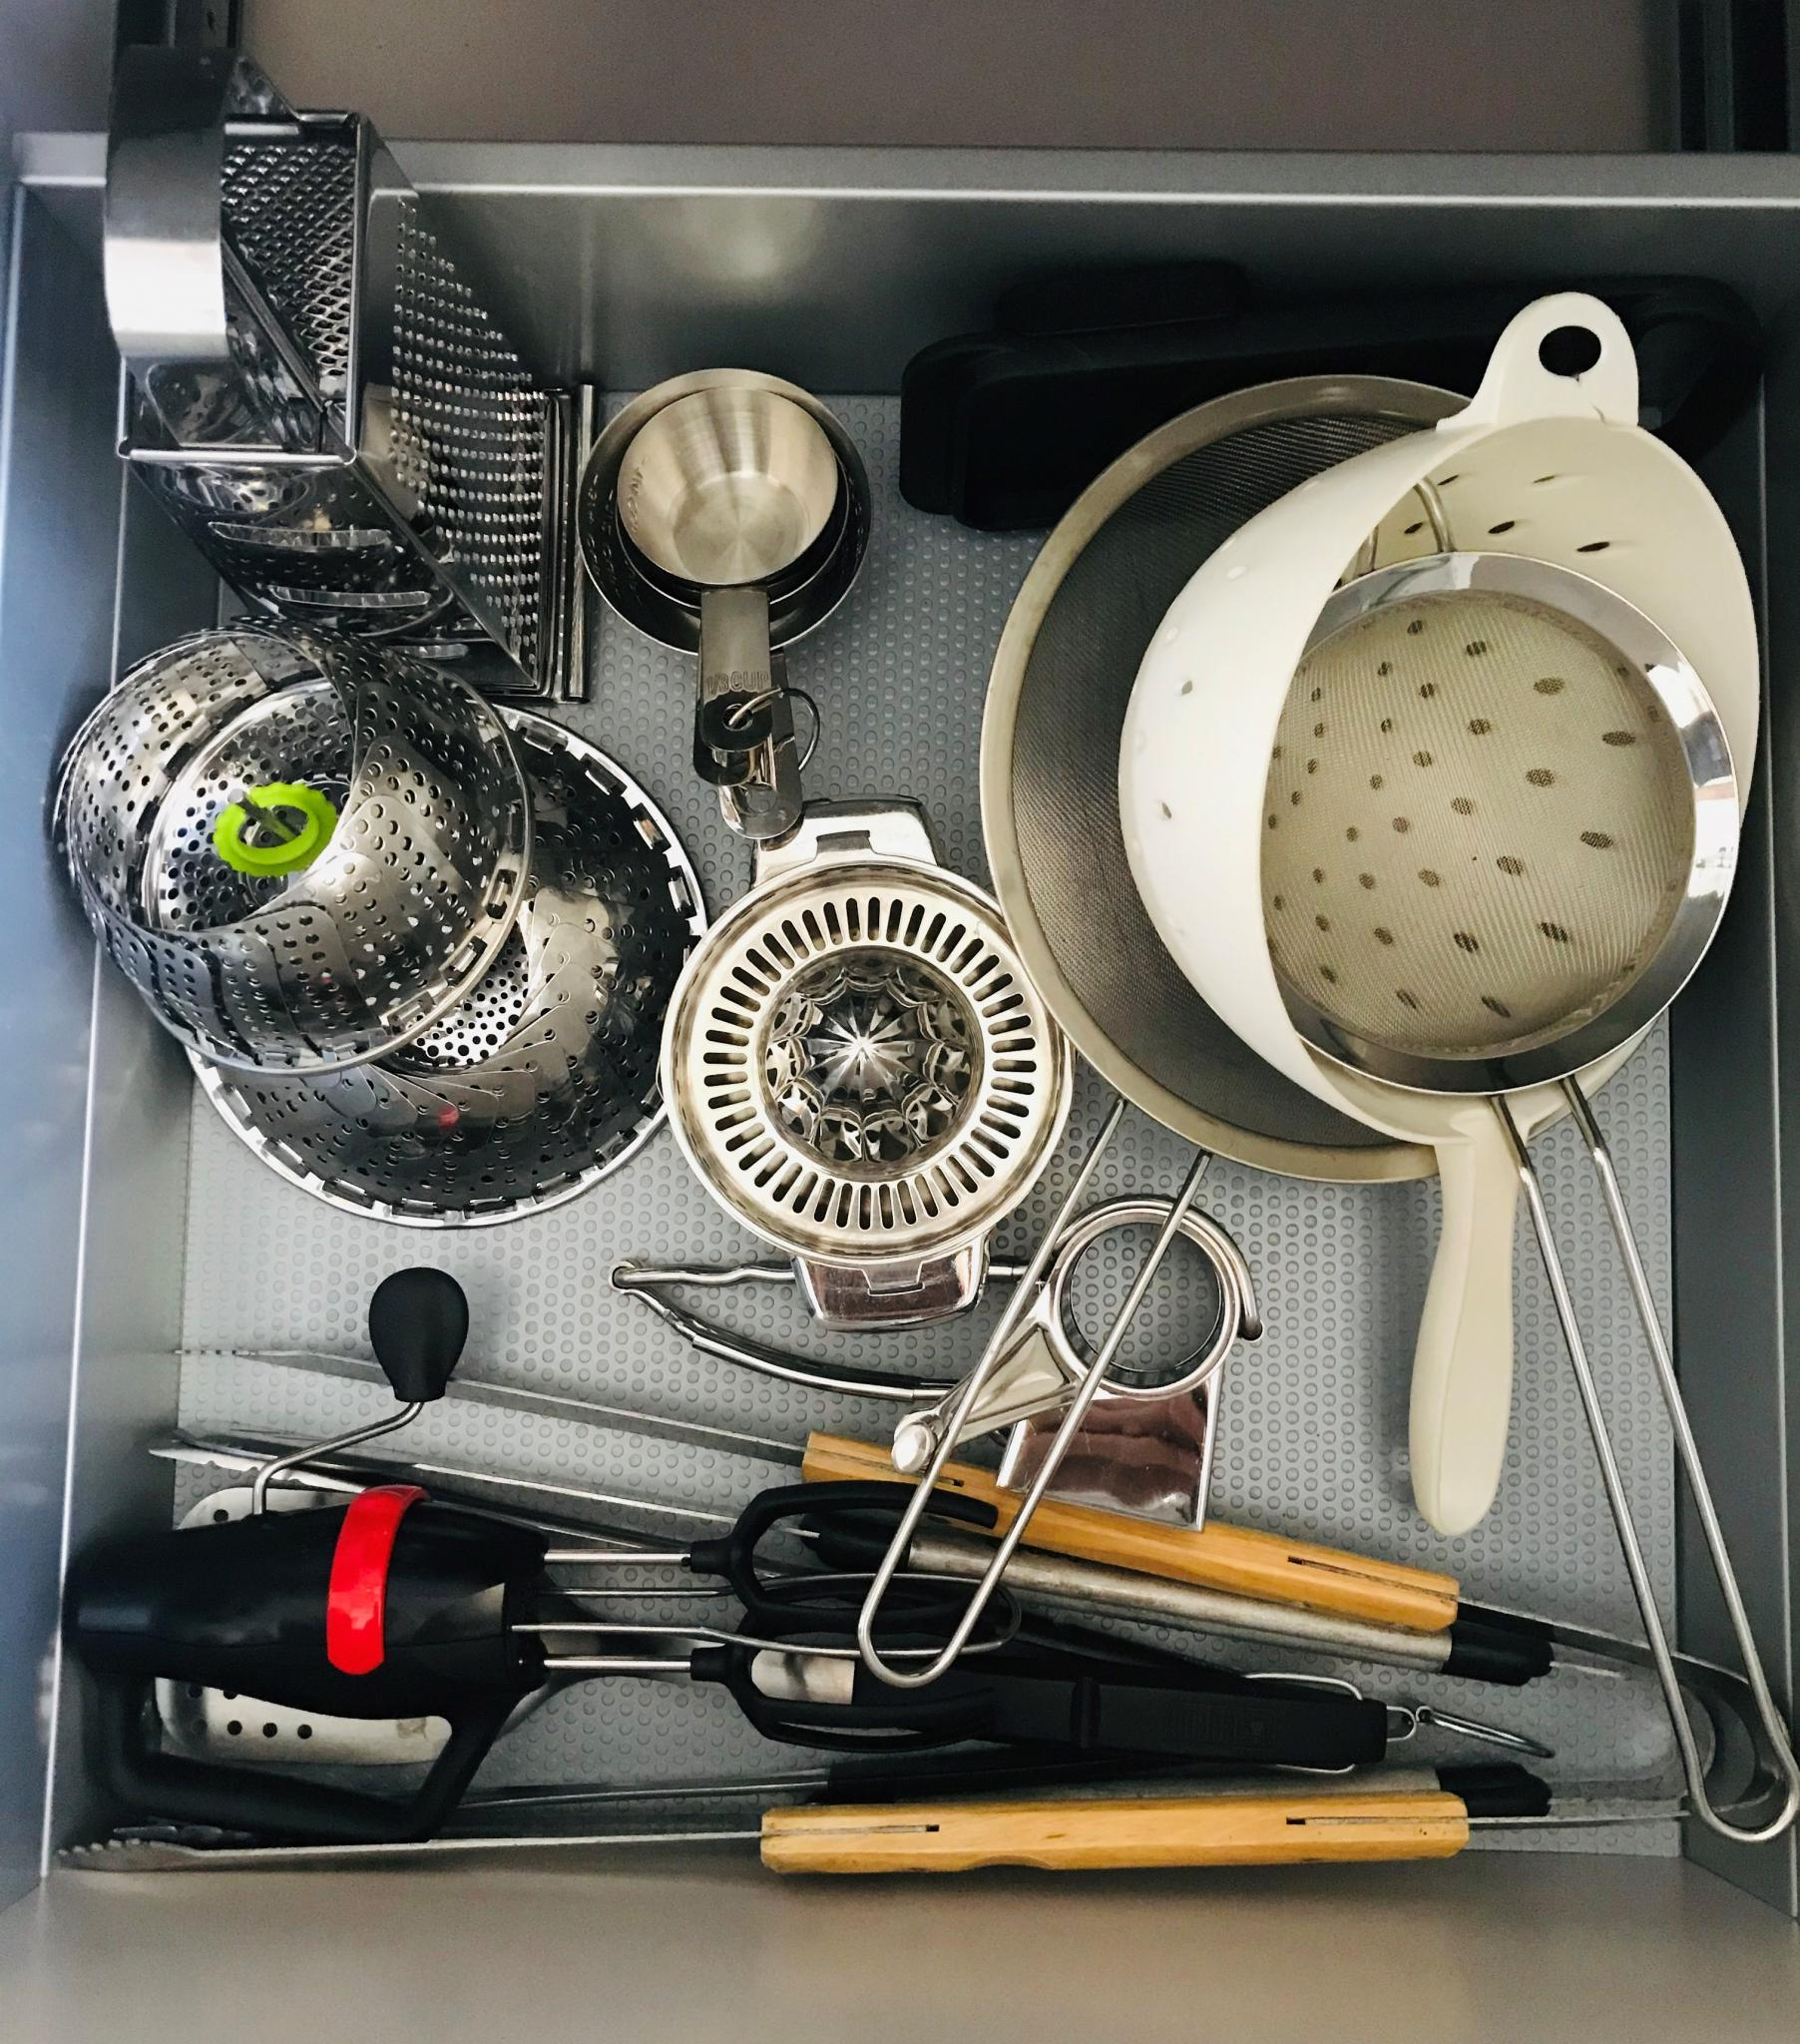 Cleaning those kitchen drawers